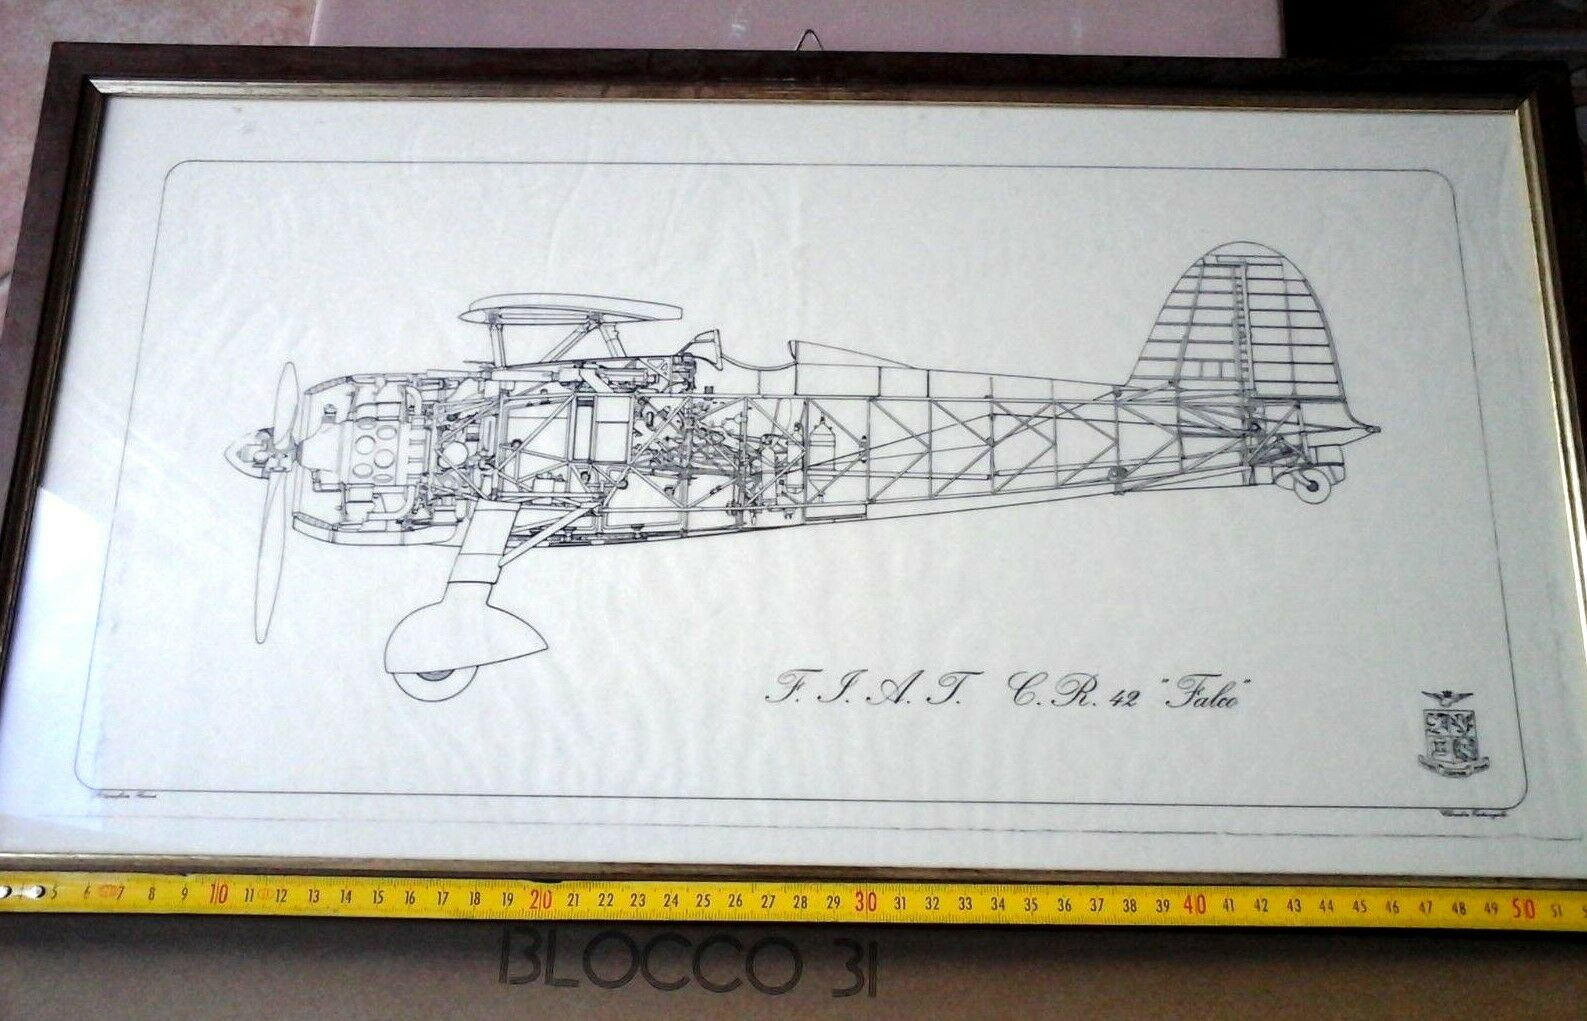 F.i.a.t. c.r.42  Falco  - Original Picture of the Regia Aeronautica